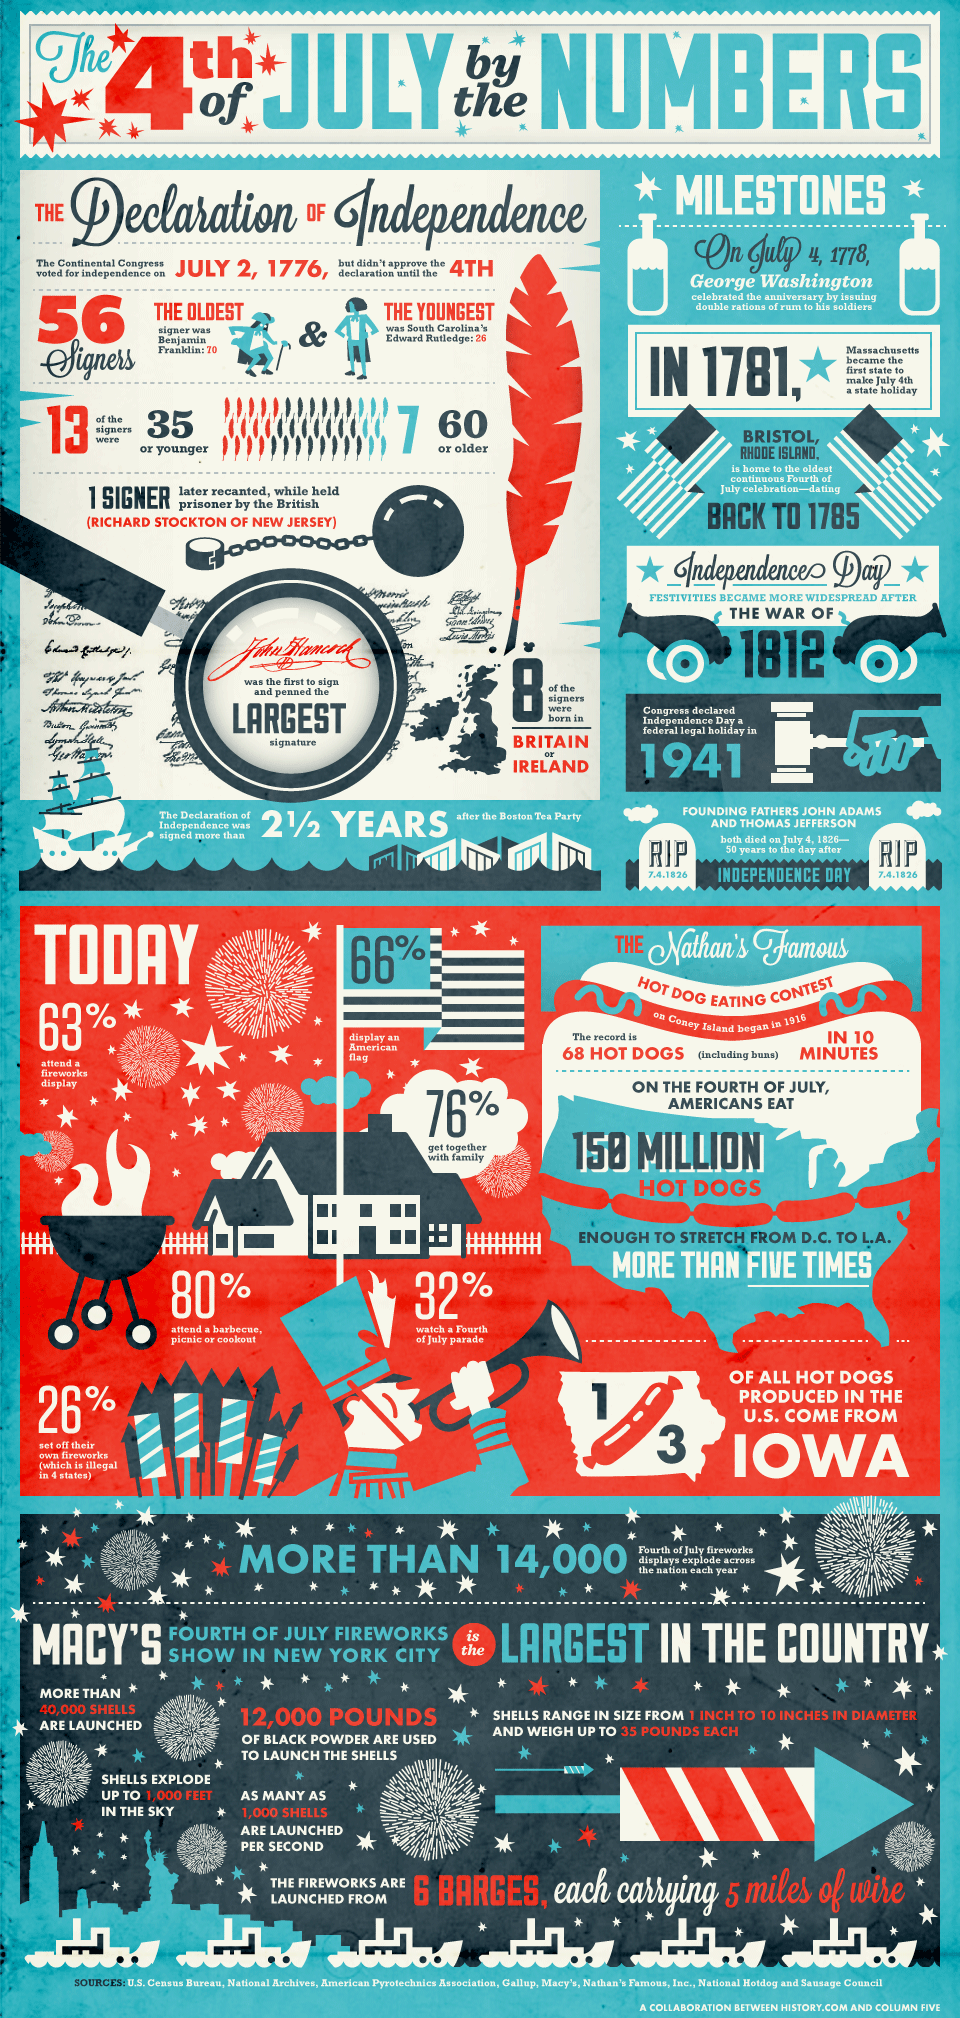 Infographic: The 4th of July by the Numbers - Column Five